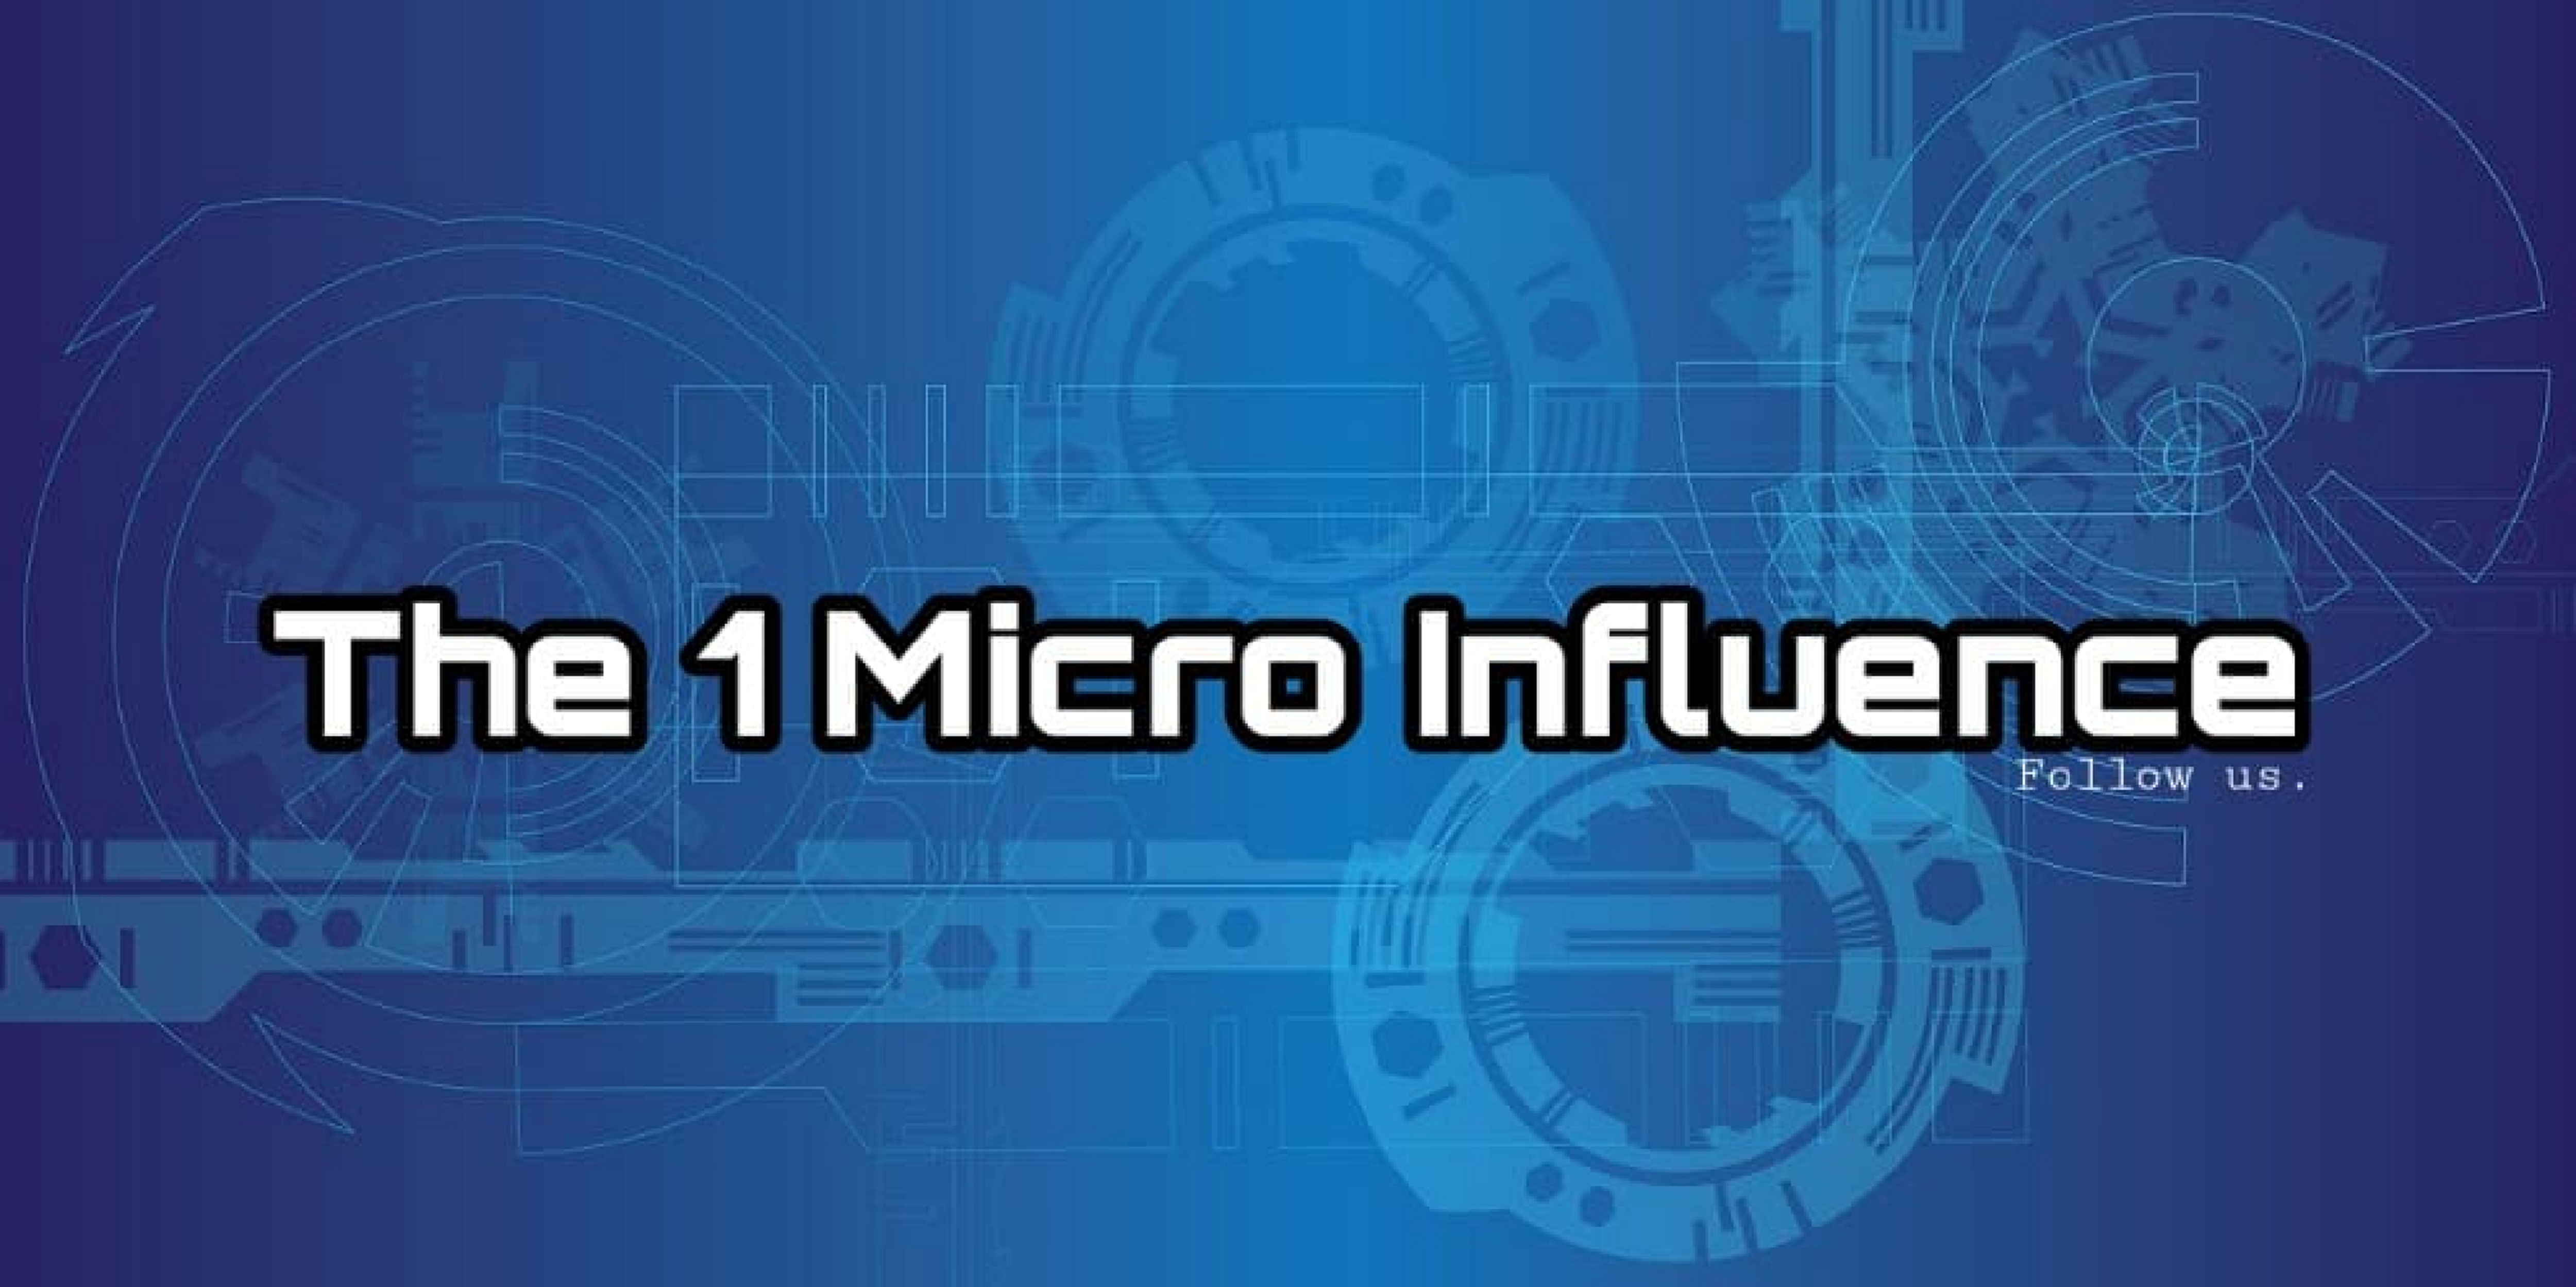 The 1 Micro Influence